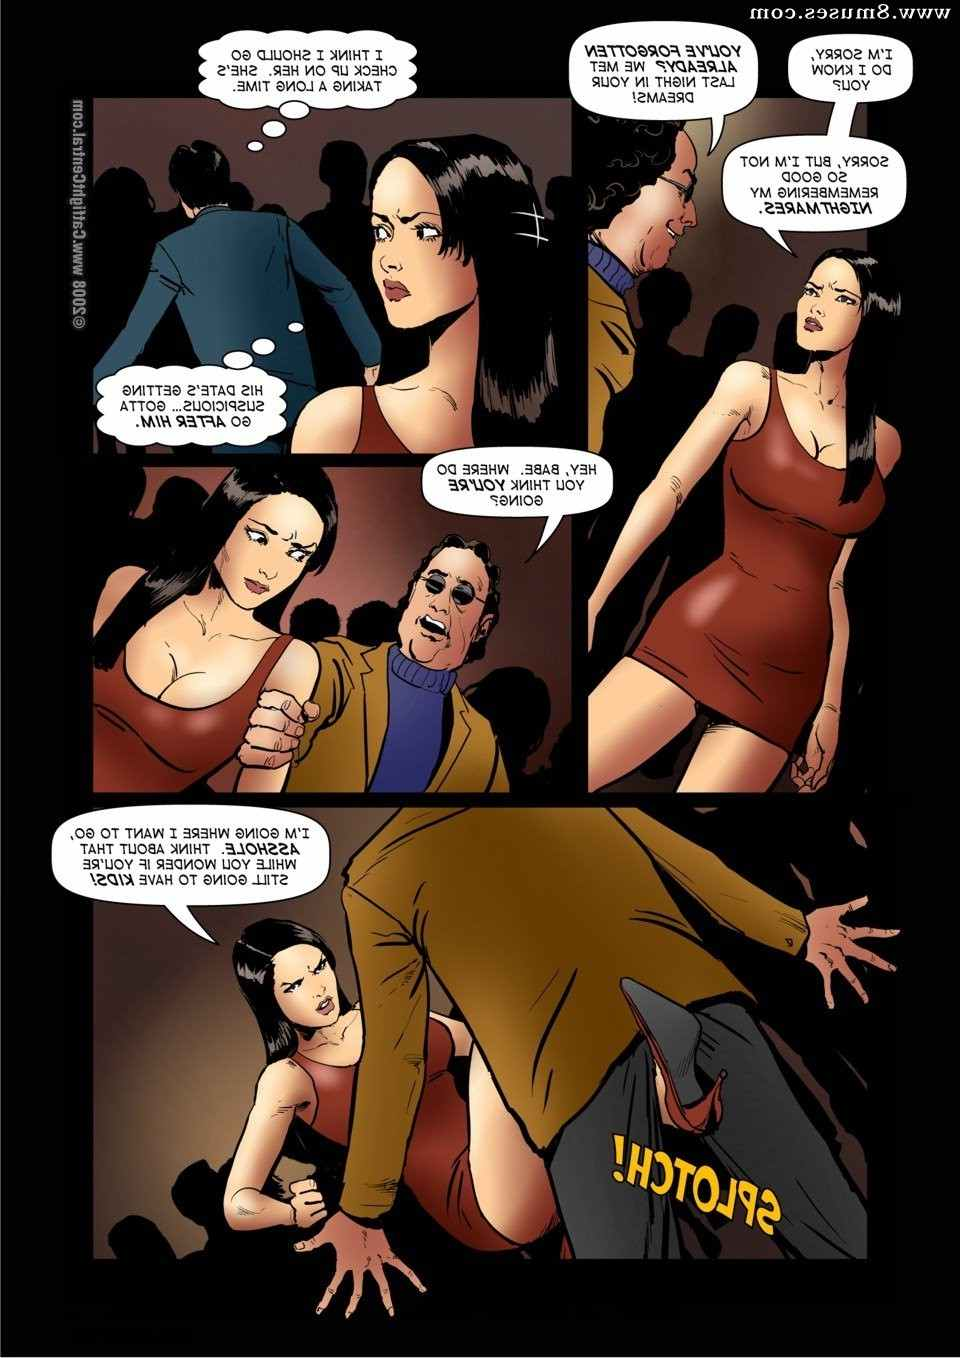 Central-Comics/Catfight-Central/Jamie-Blonde Jamie_Blonde__8muses_-_Sex_and_Porn_Comics_9.jpg